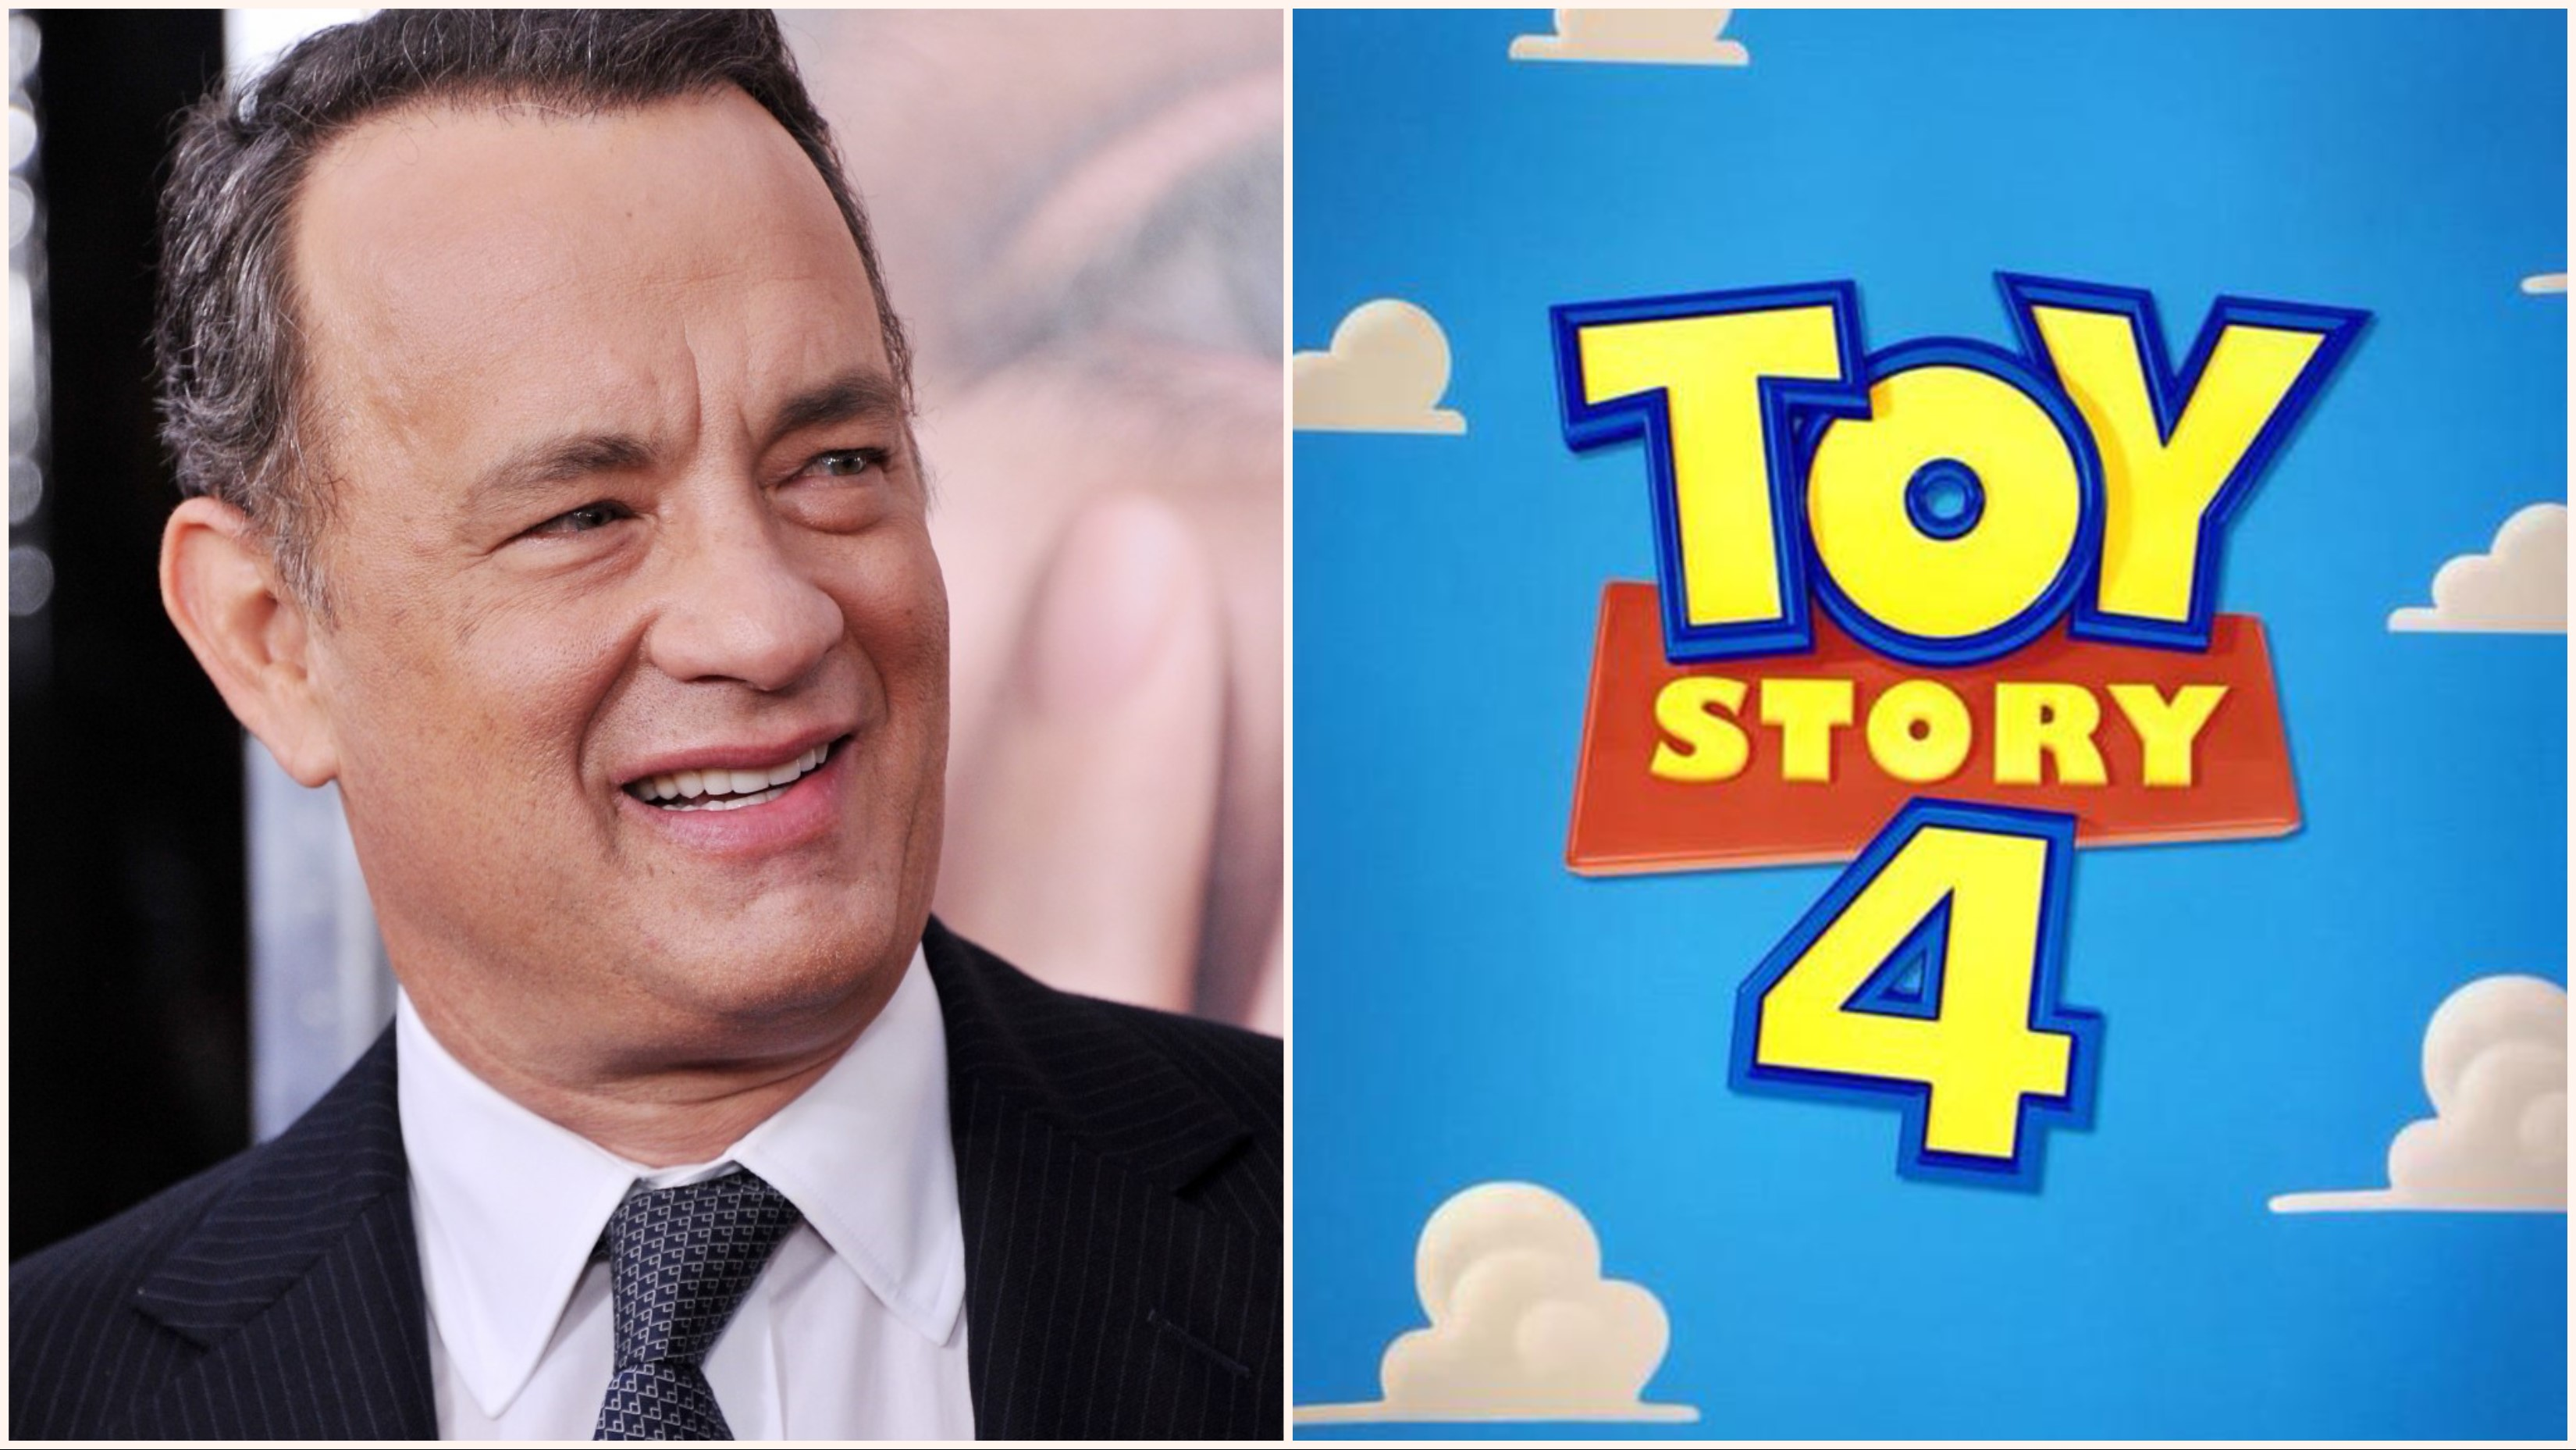 Tom Hanks Talks Emotional 'Toy Story 4' Ending